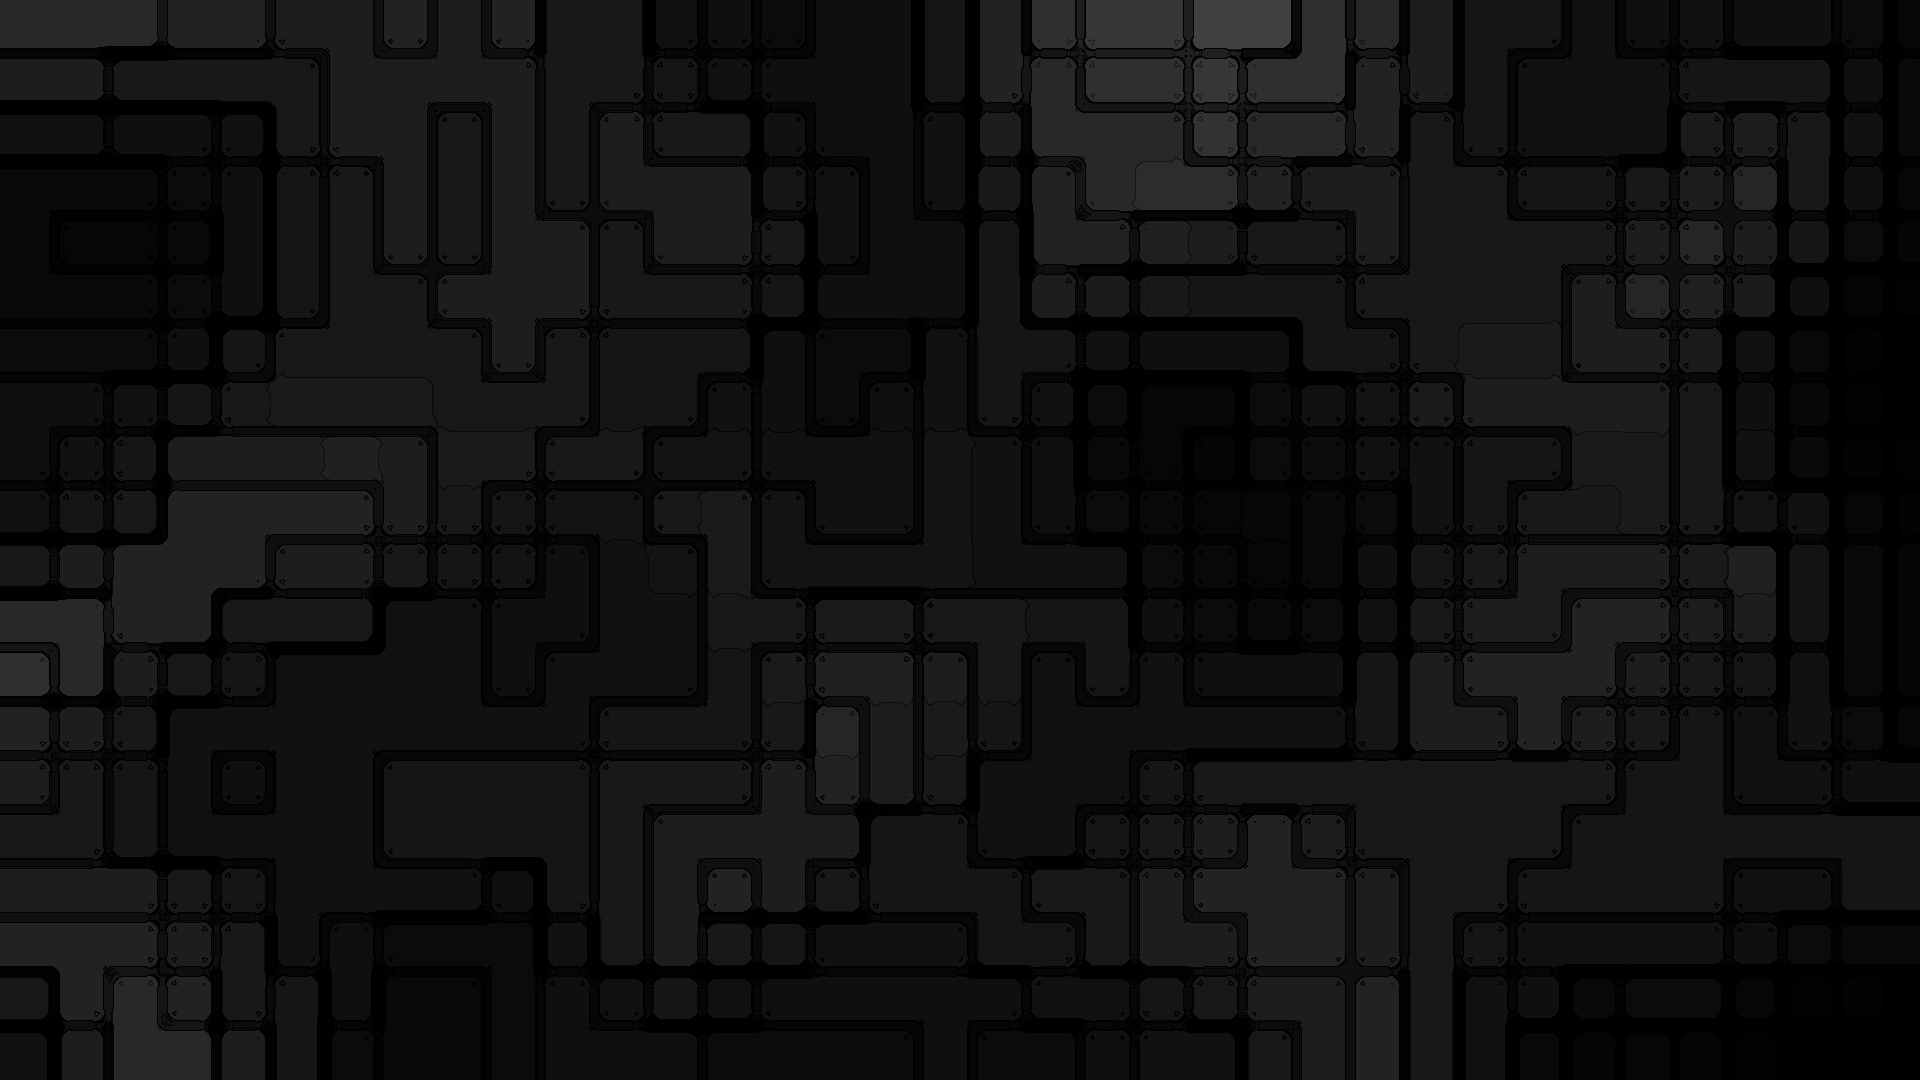 Free-Dark-Black-Pattern-Image-For-Window-http-ae-free-dark-black-pattern-image-window-wallpaper-wp3405828